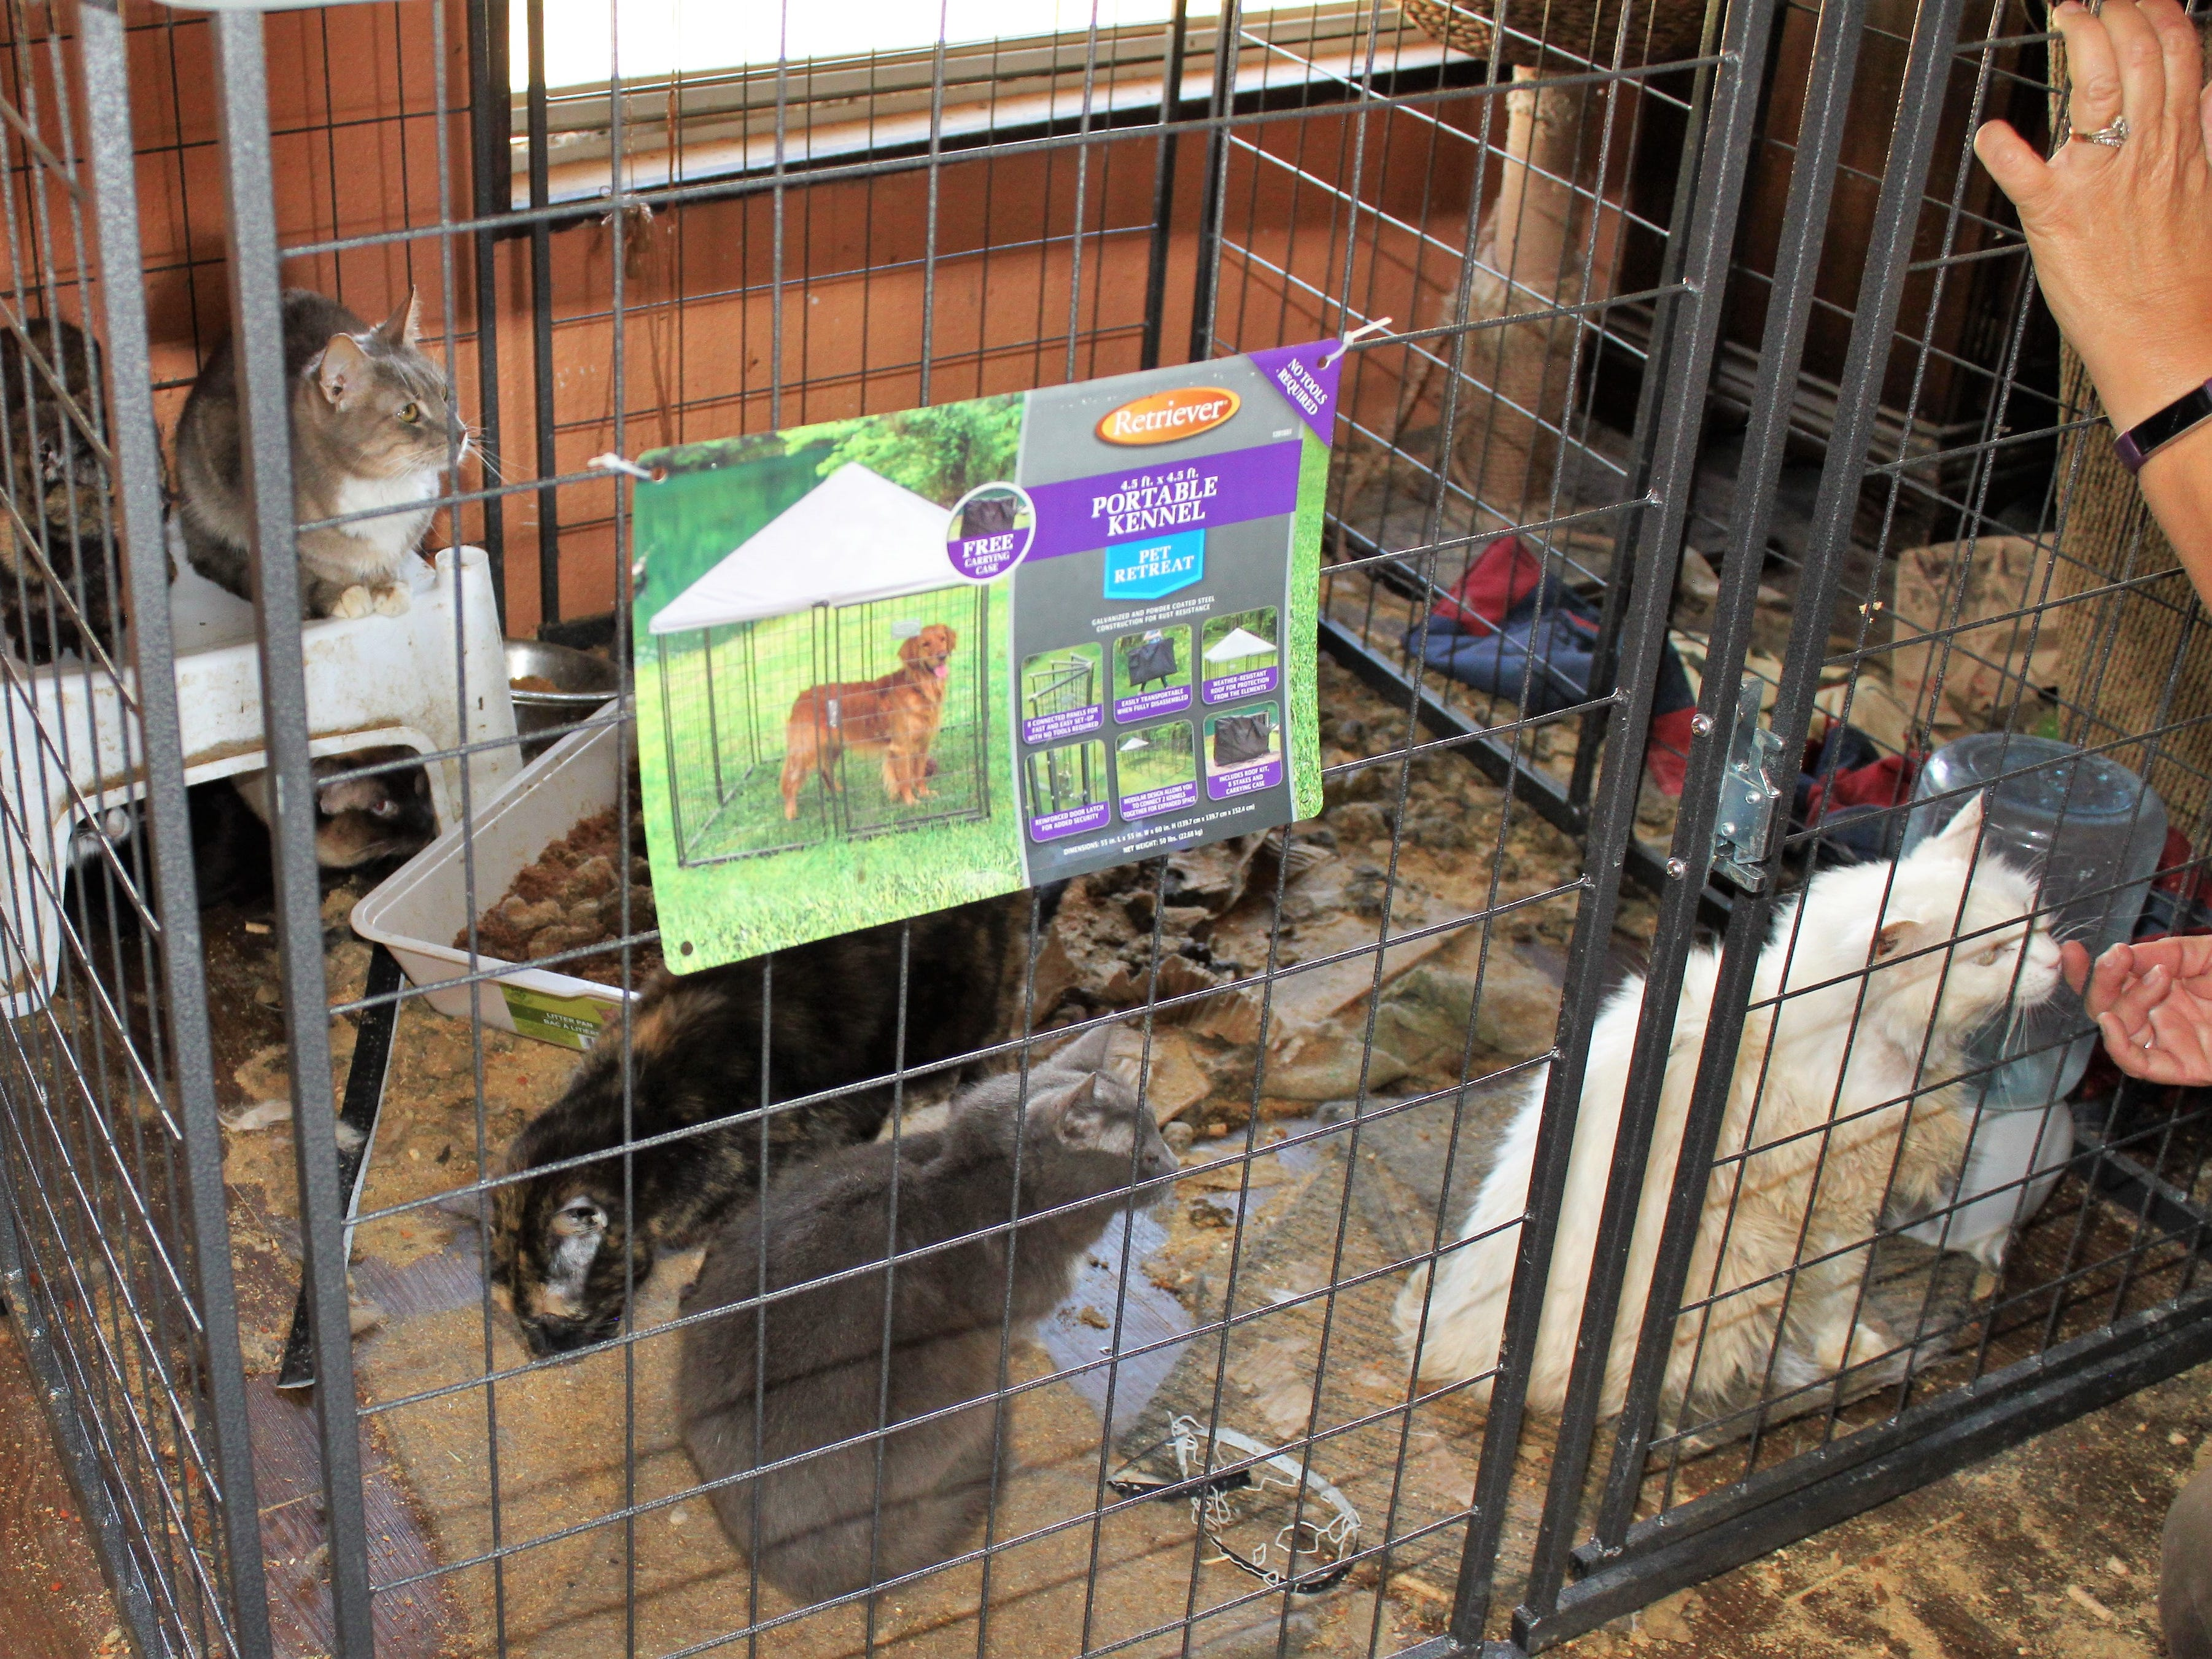 Animal control officers seized 54 neglected animals, including 28 cats, from a home in Cordes Lakes on May 7, 2019.